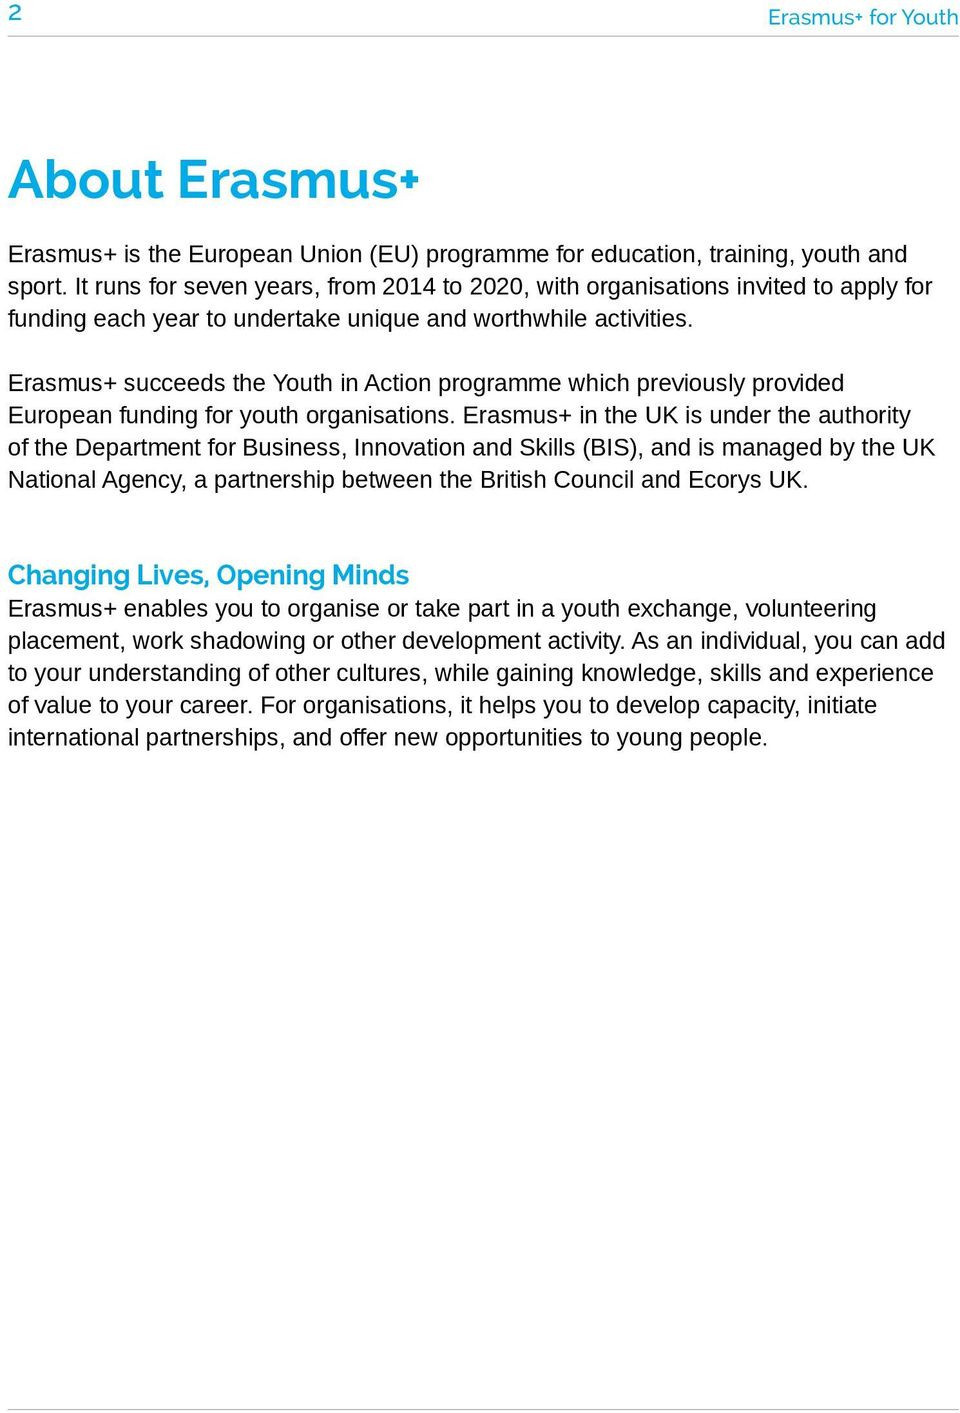 Erasmus+ succeeds the Youth in Action programme which previously provided European funding for youth organisations.